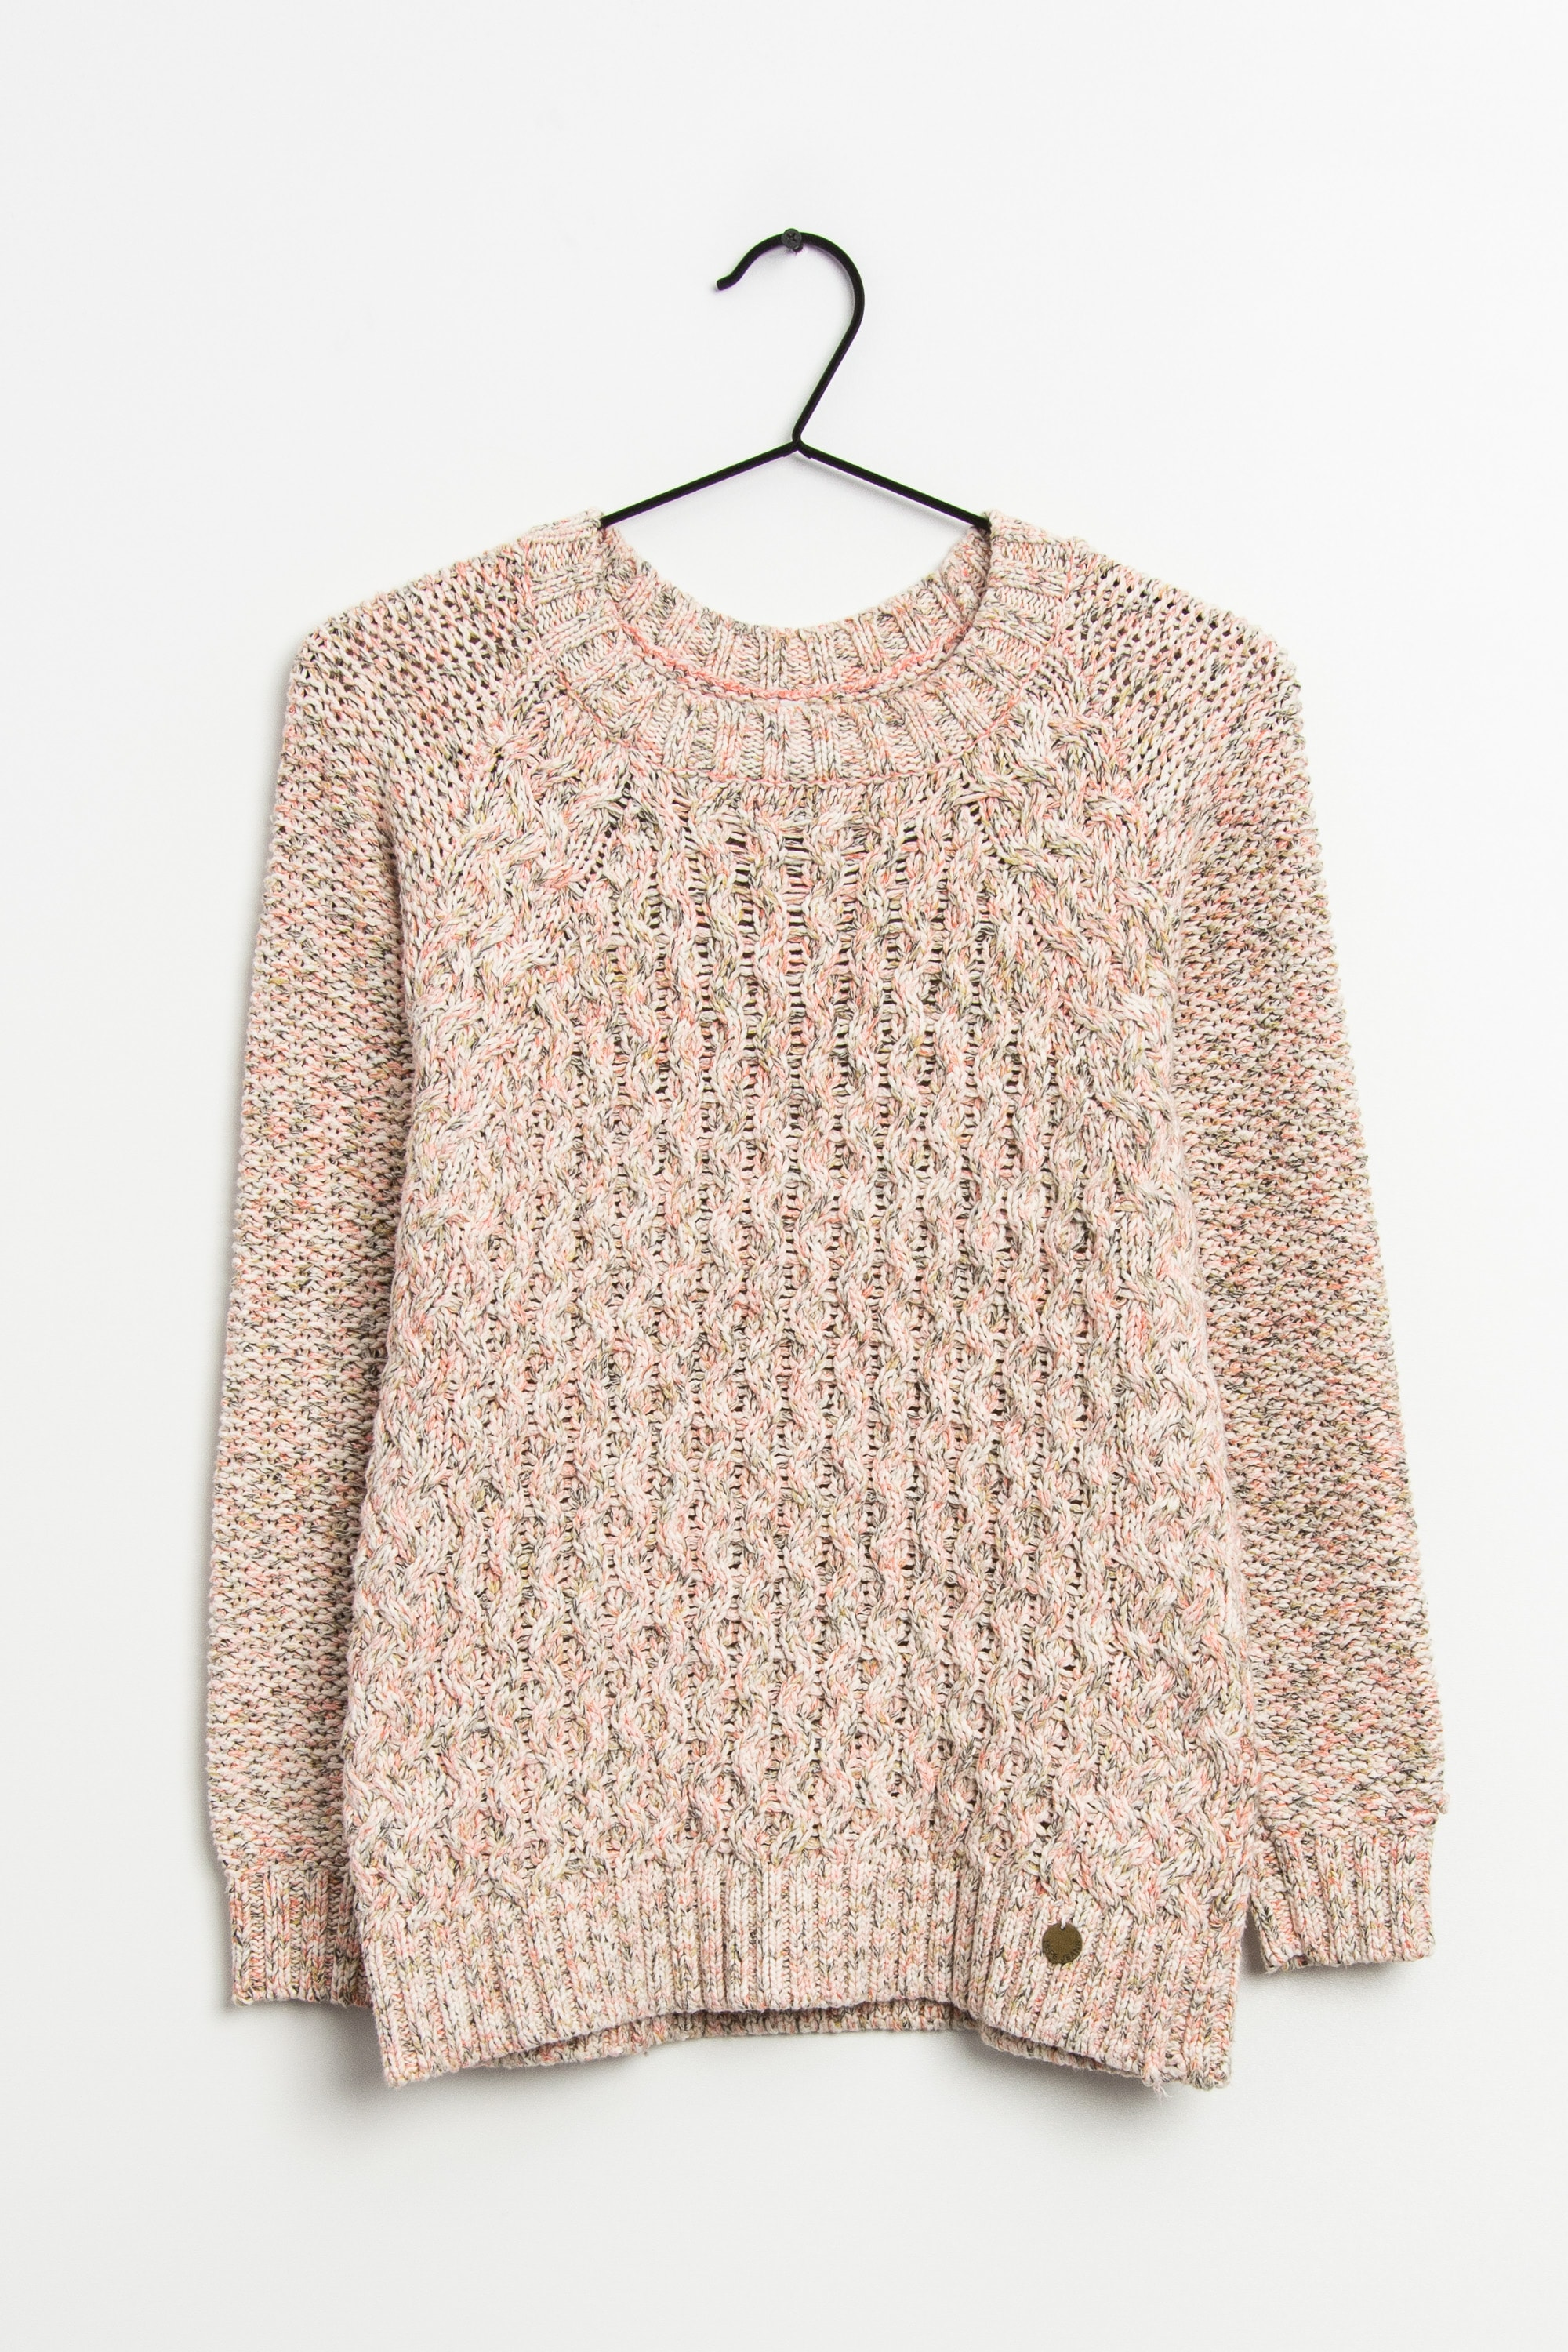 Pepe Jeans Strickpullover Pink Gr.XS